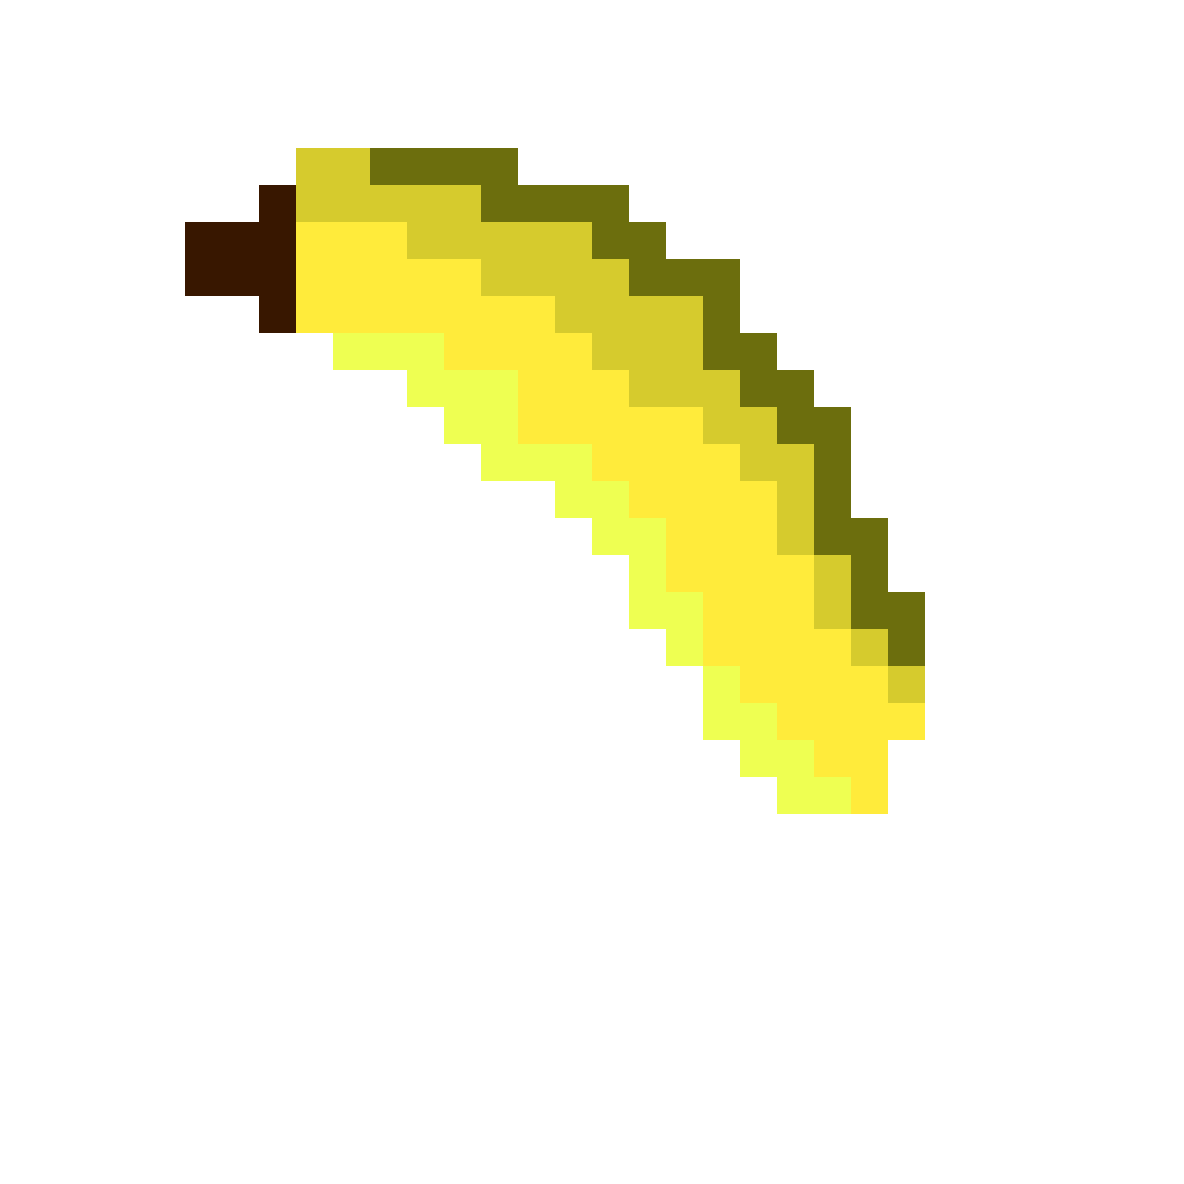 Bananas transparent pixelated. Pixilart banana by xrainydayx